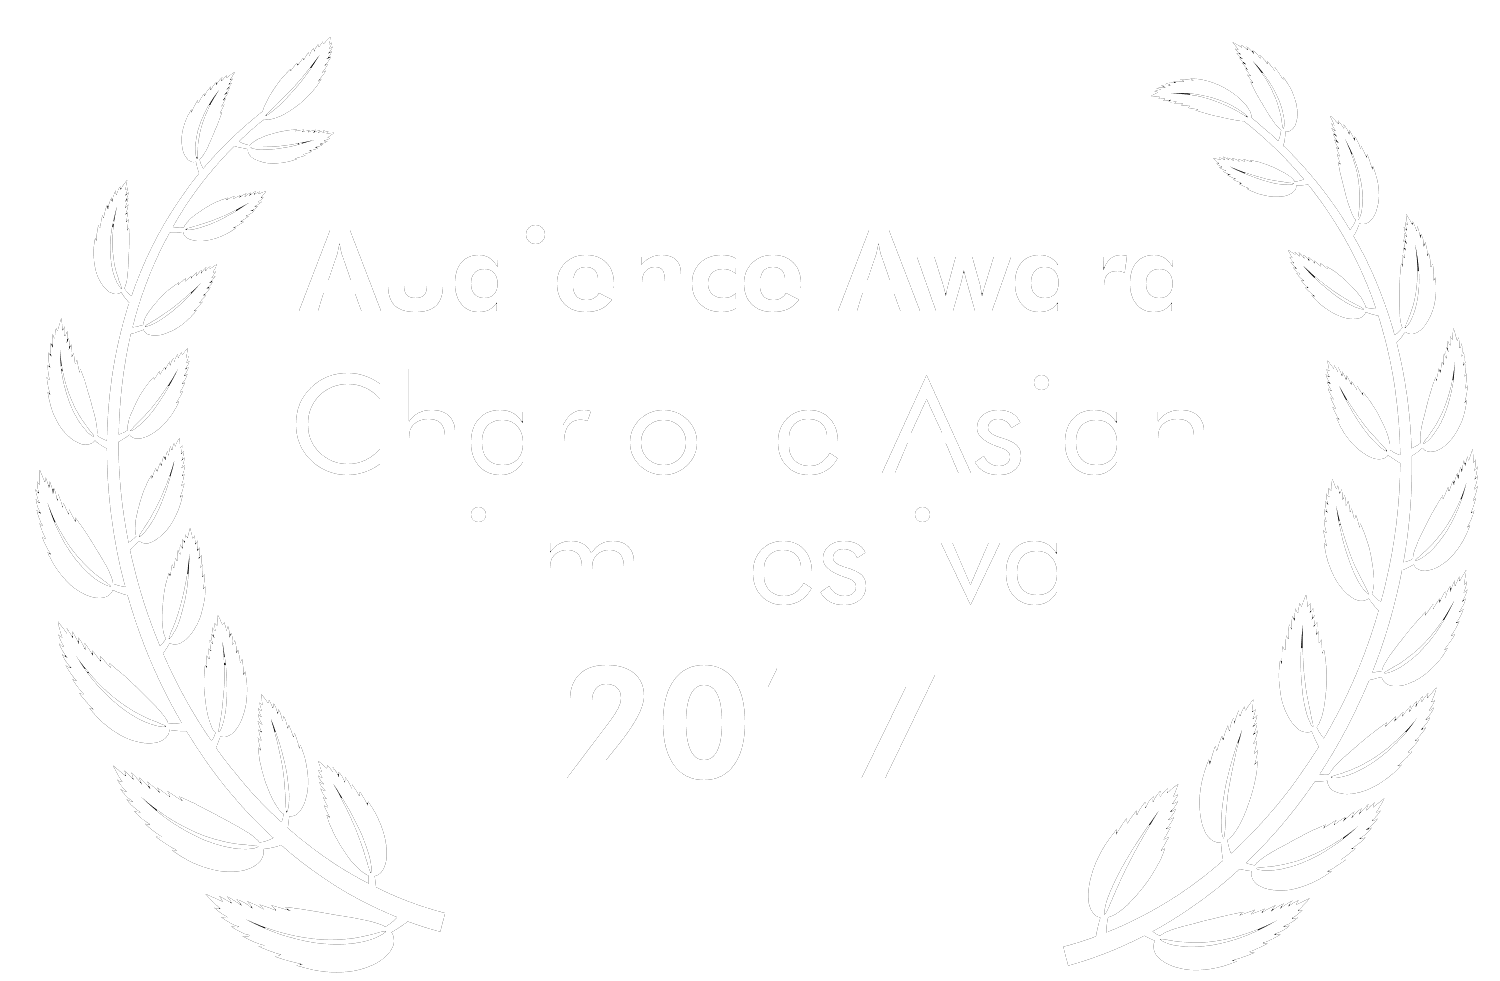 charlotte asian film festival - audience award-black.png